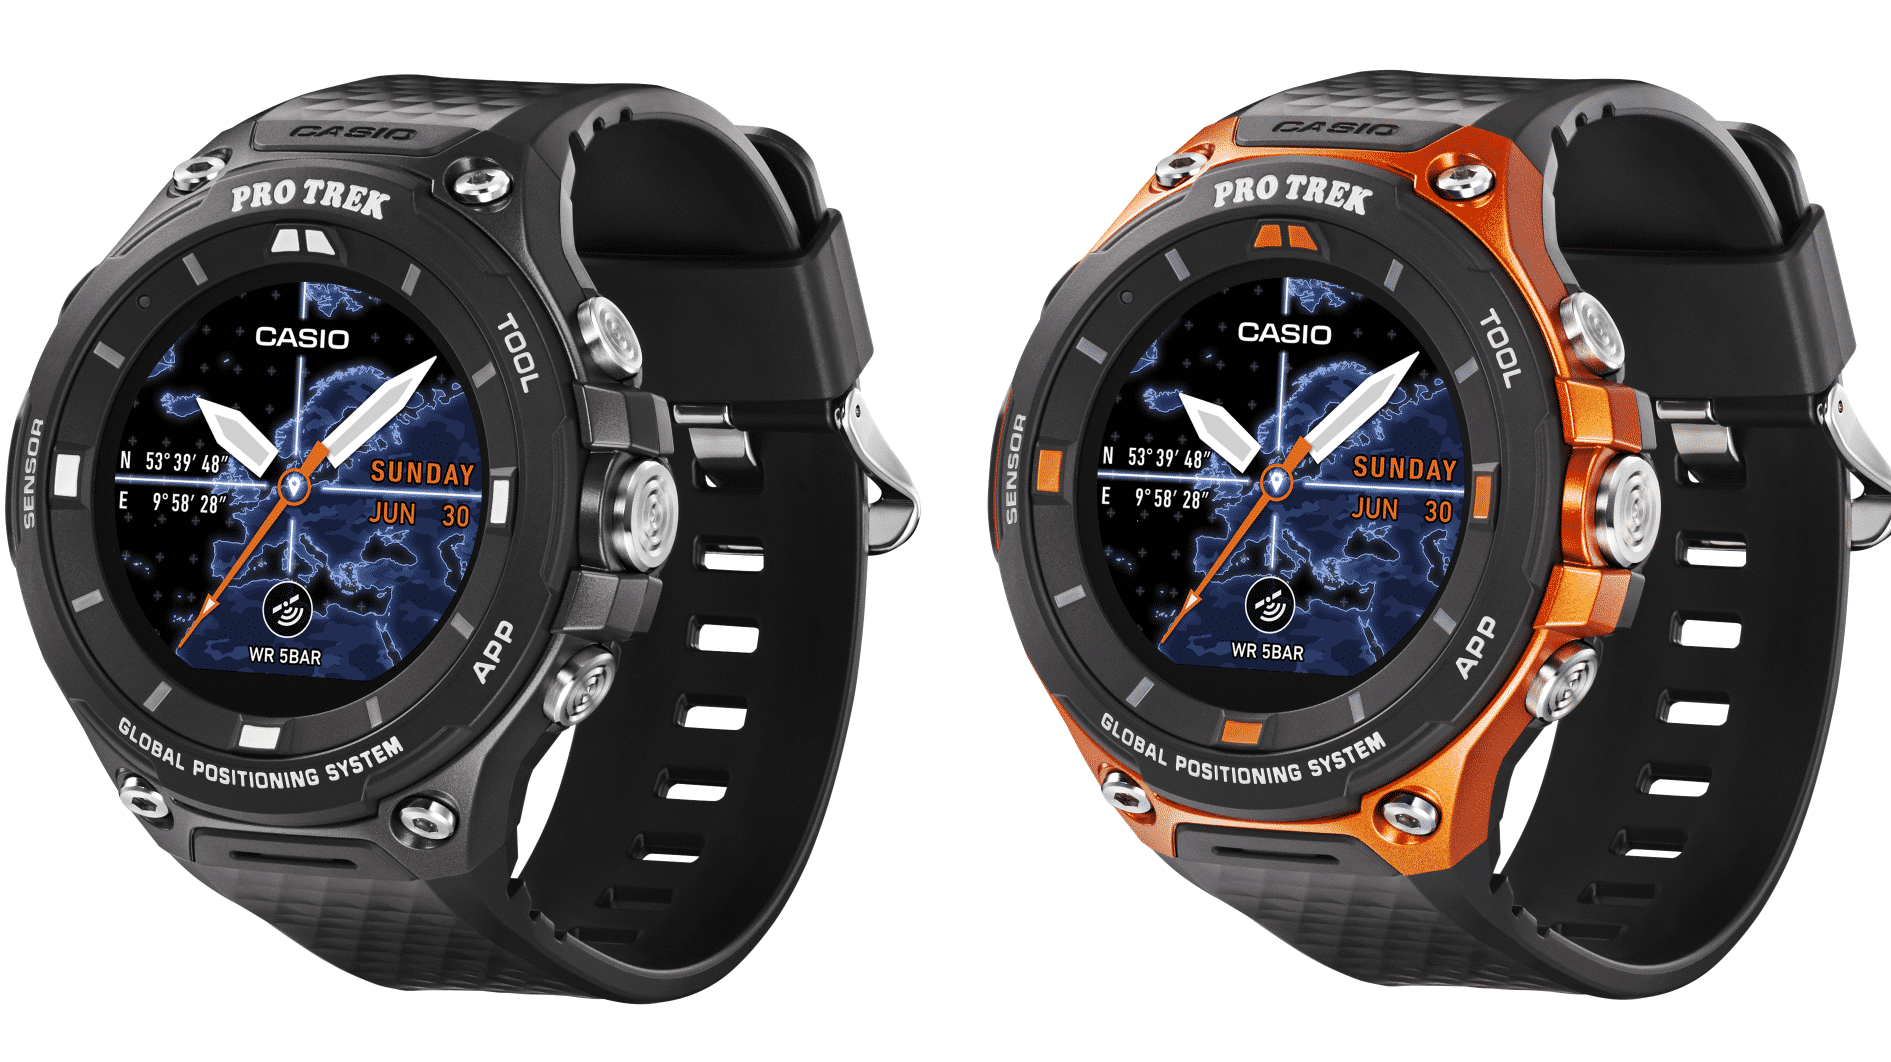 Outdoor-Smartwatch von Casio mit Android Wear 2.0